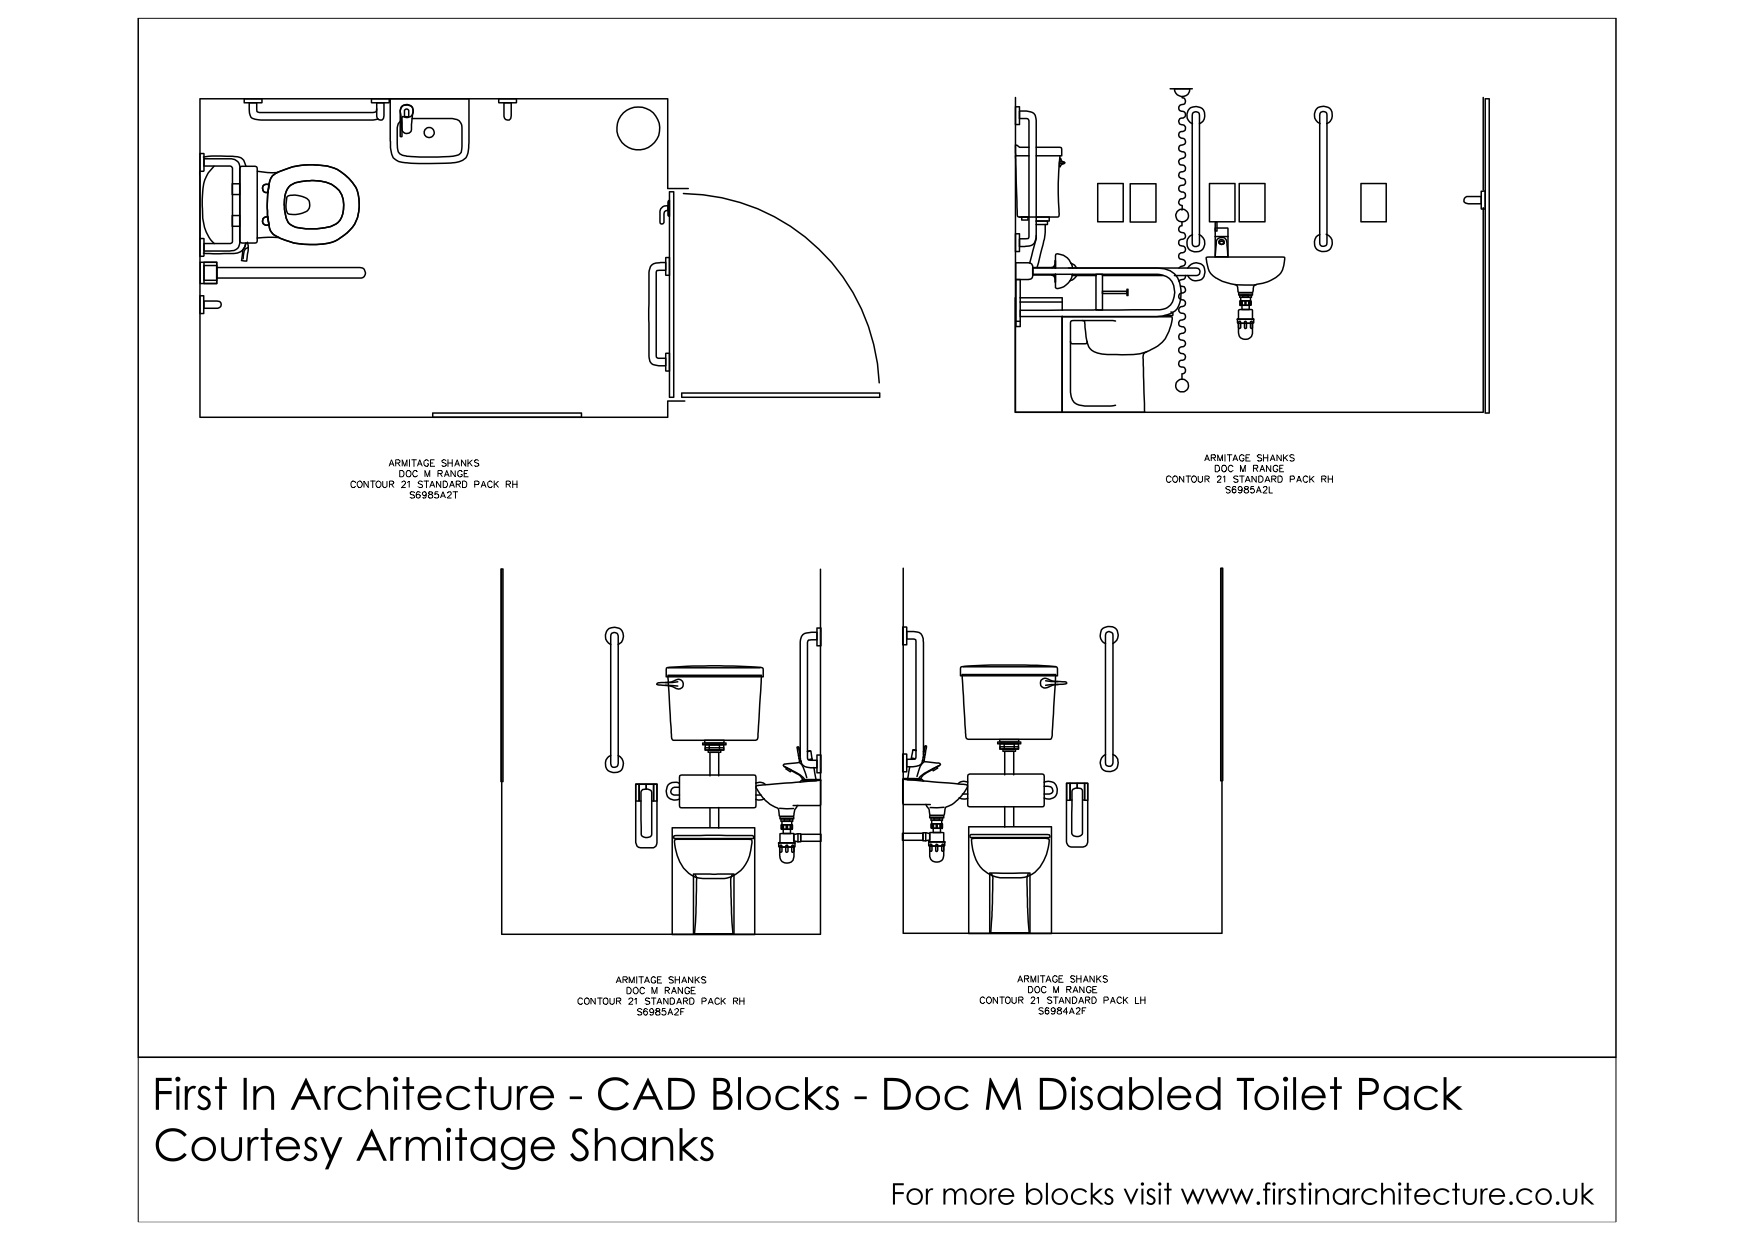 Free Cad Blocks Doc M Disabled Toilet First In Architecture